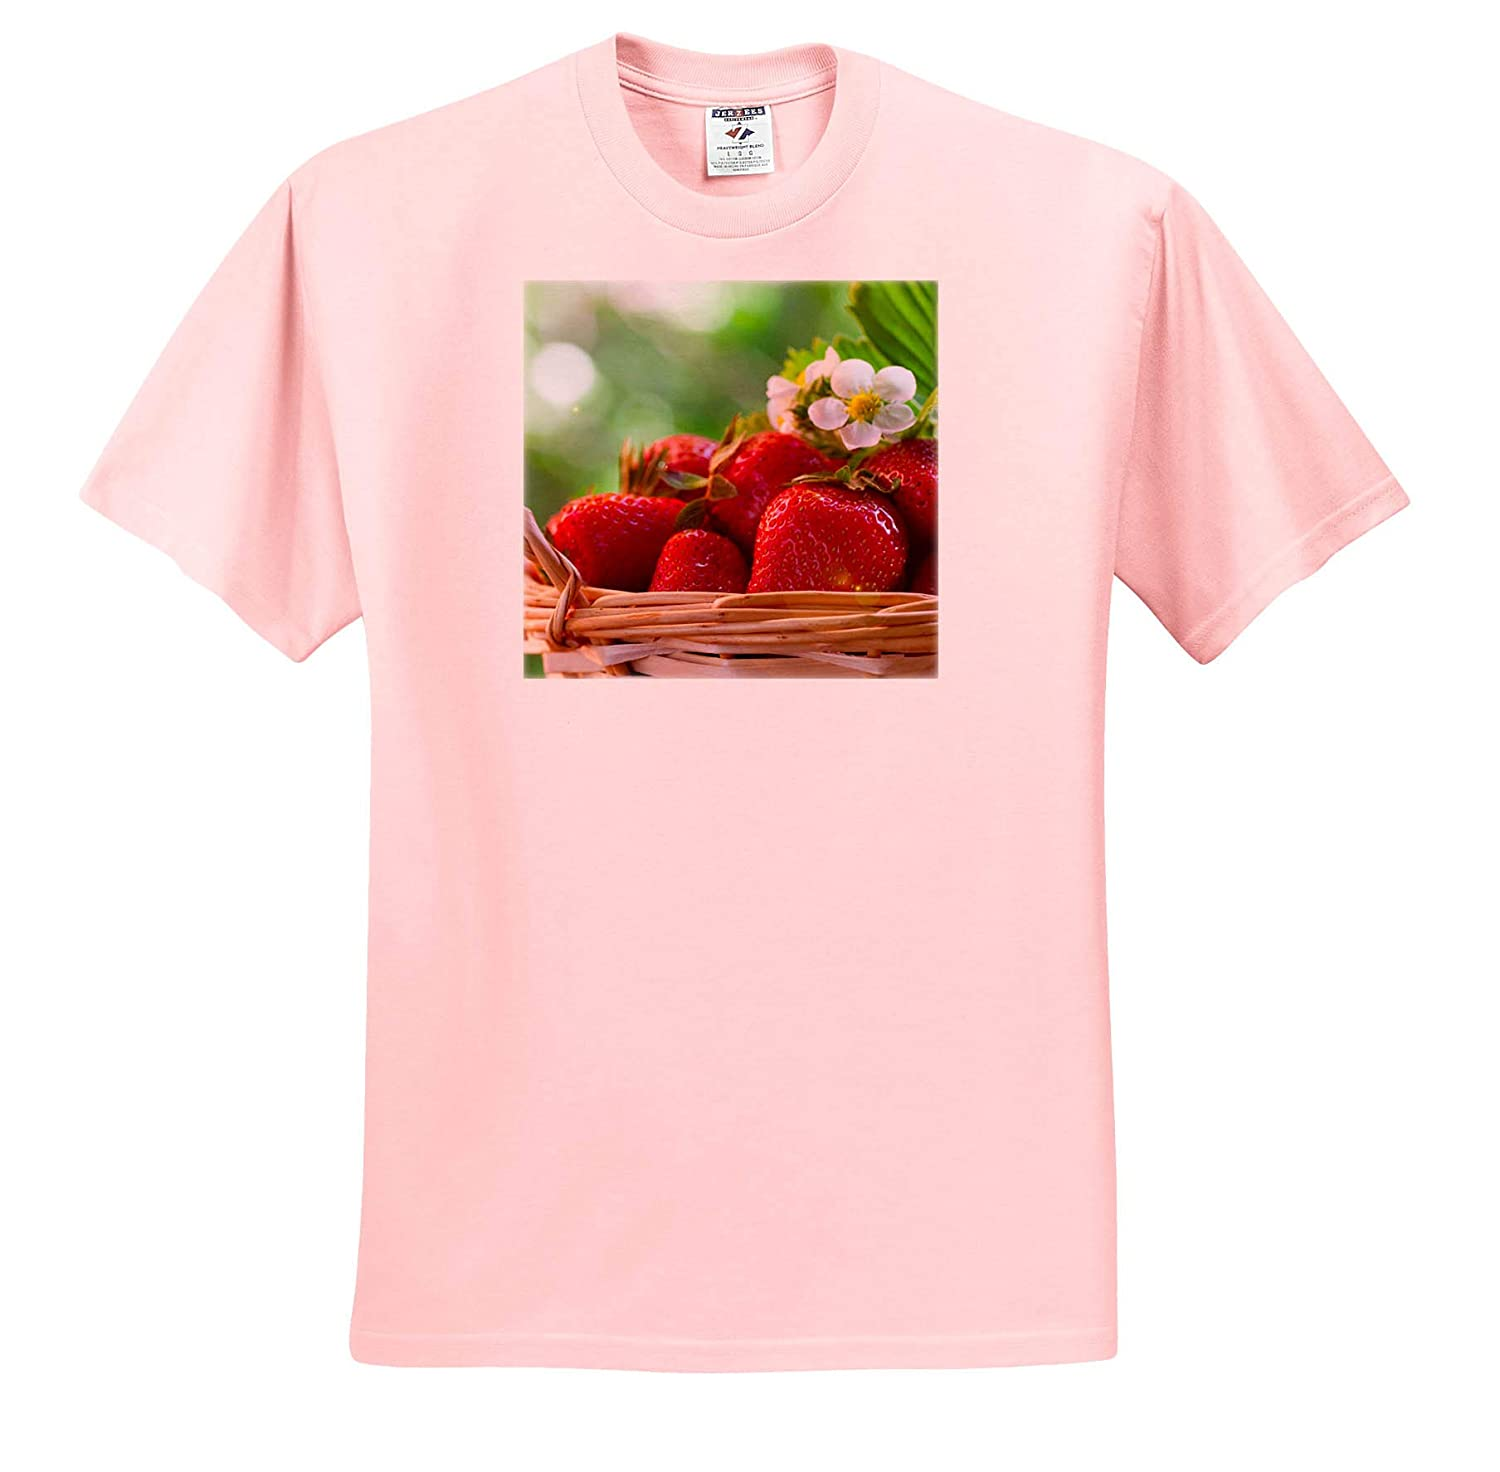 Photograph of a Basket of Delicious Nature 3dRose Stamp City - T-Shirts red Strawberries